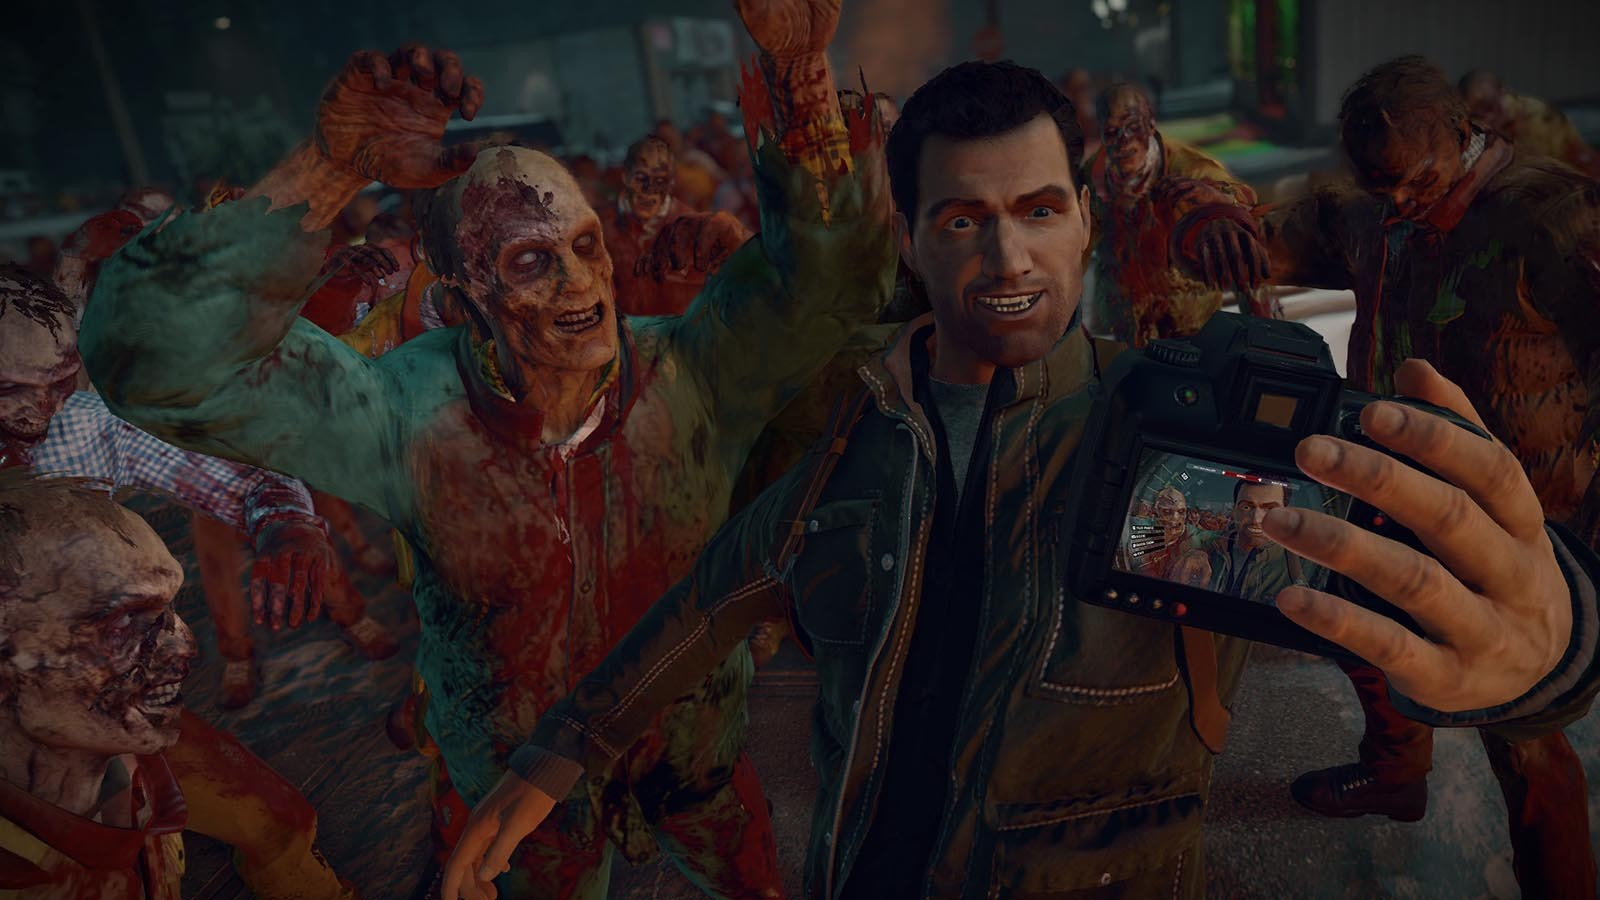 158 employees affected as Capcom shuts down Dead Rising studio